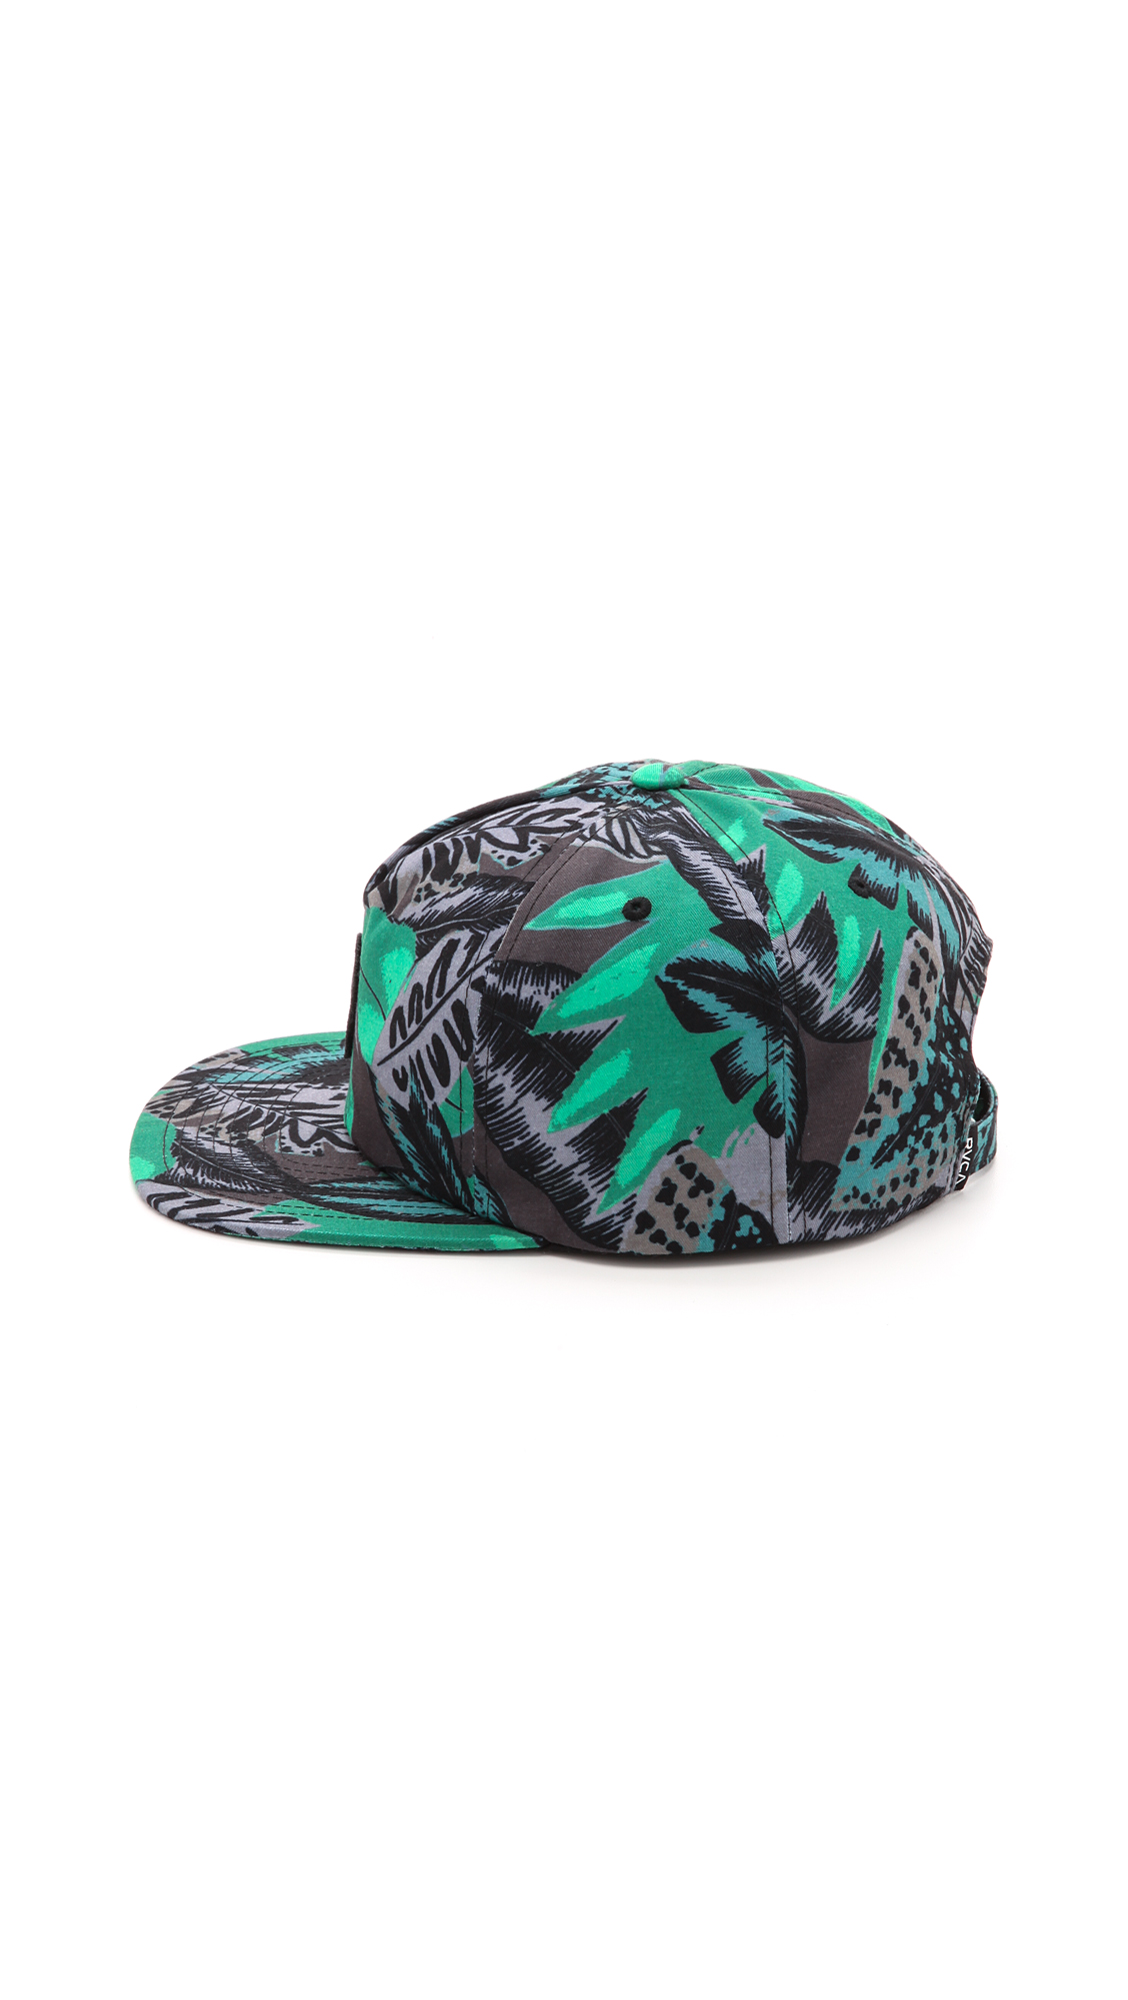 7fa0789e591 RVCA Jungle Leaves Snapback Cap